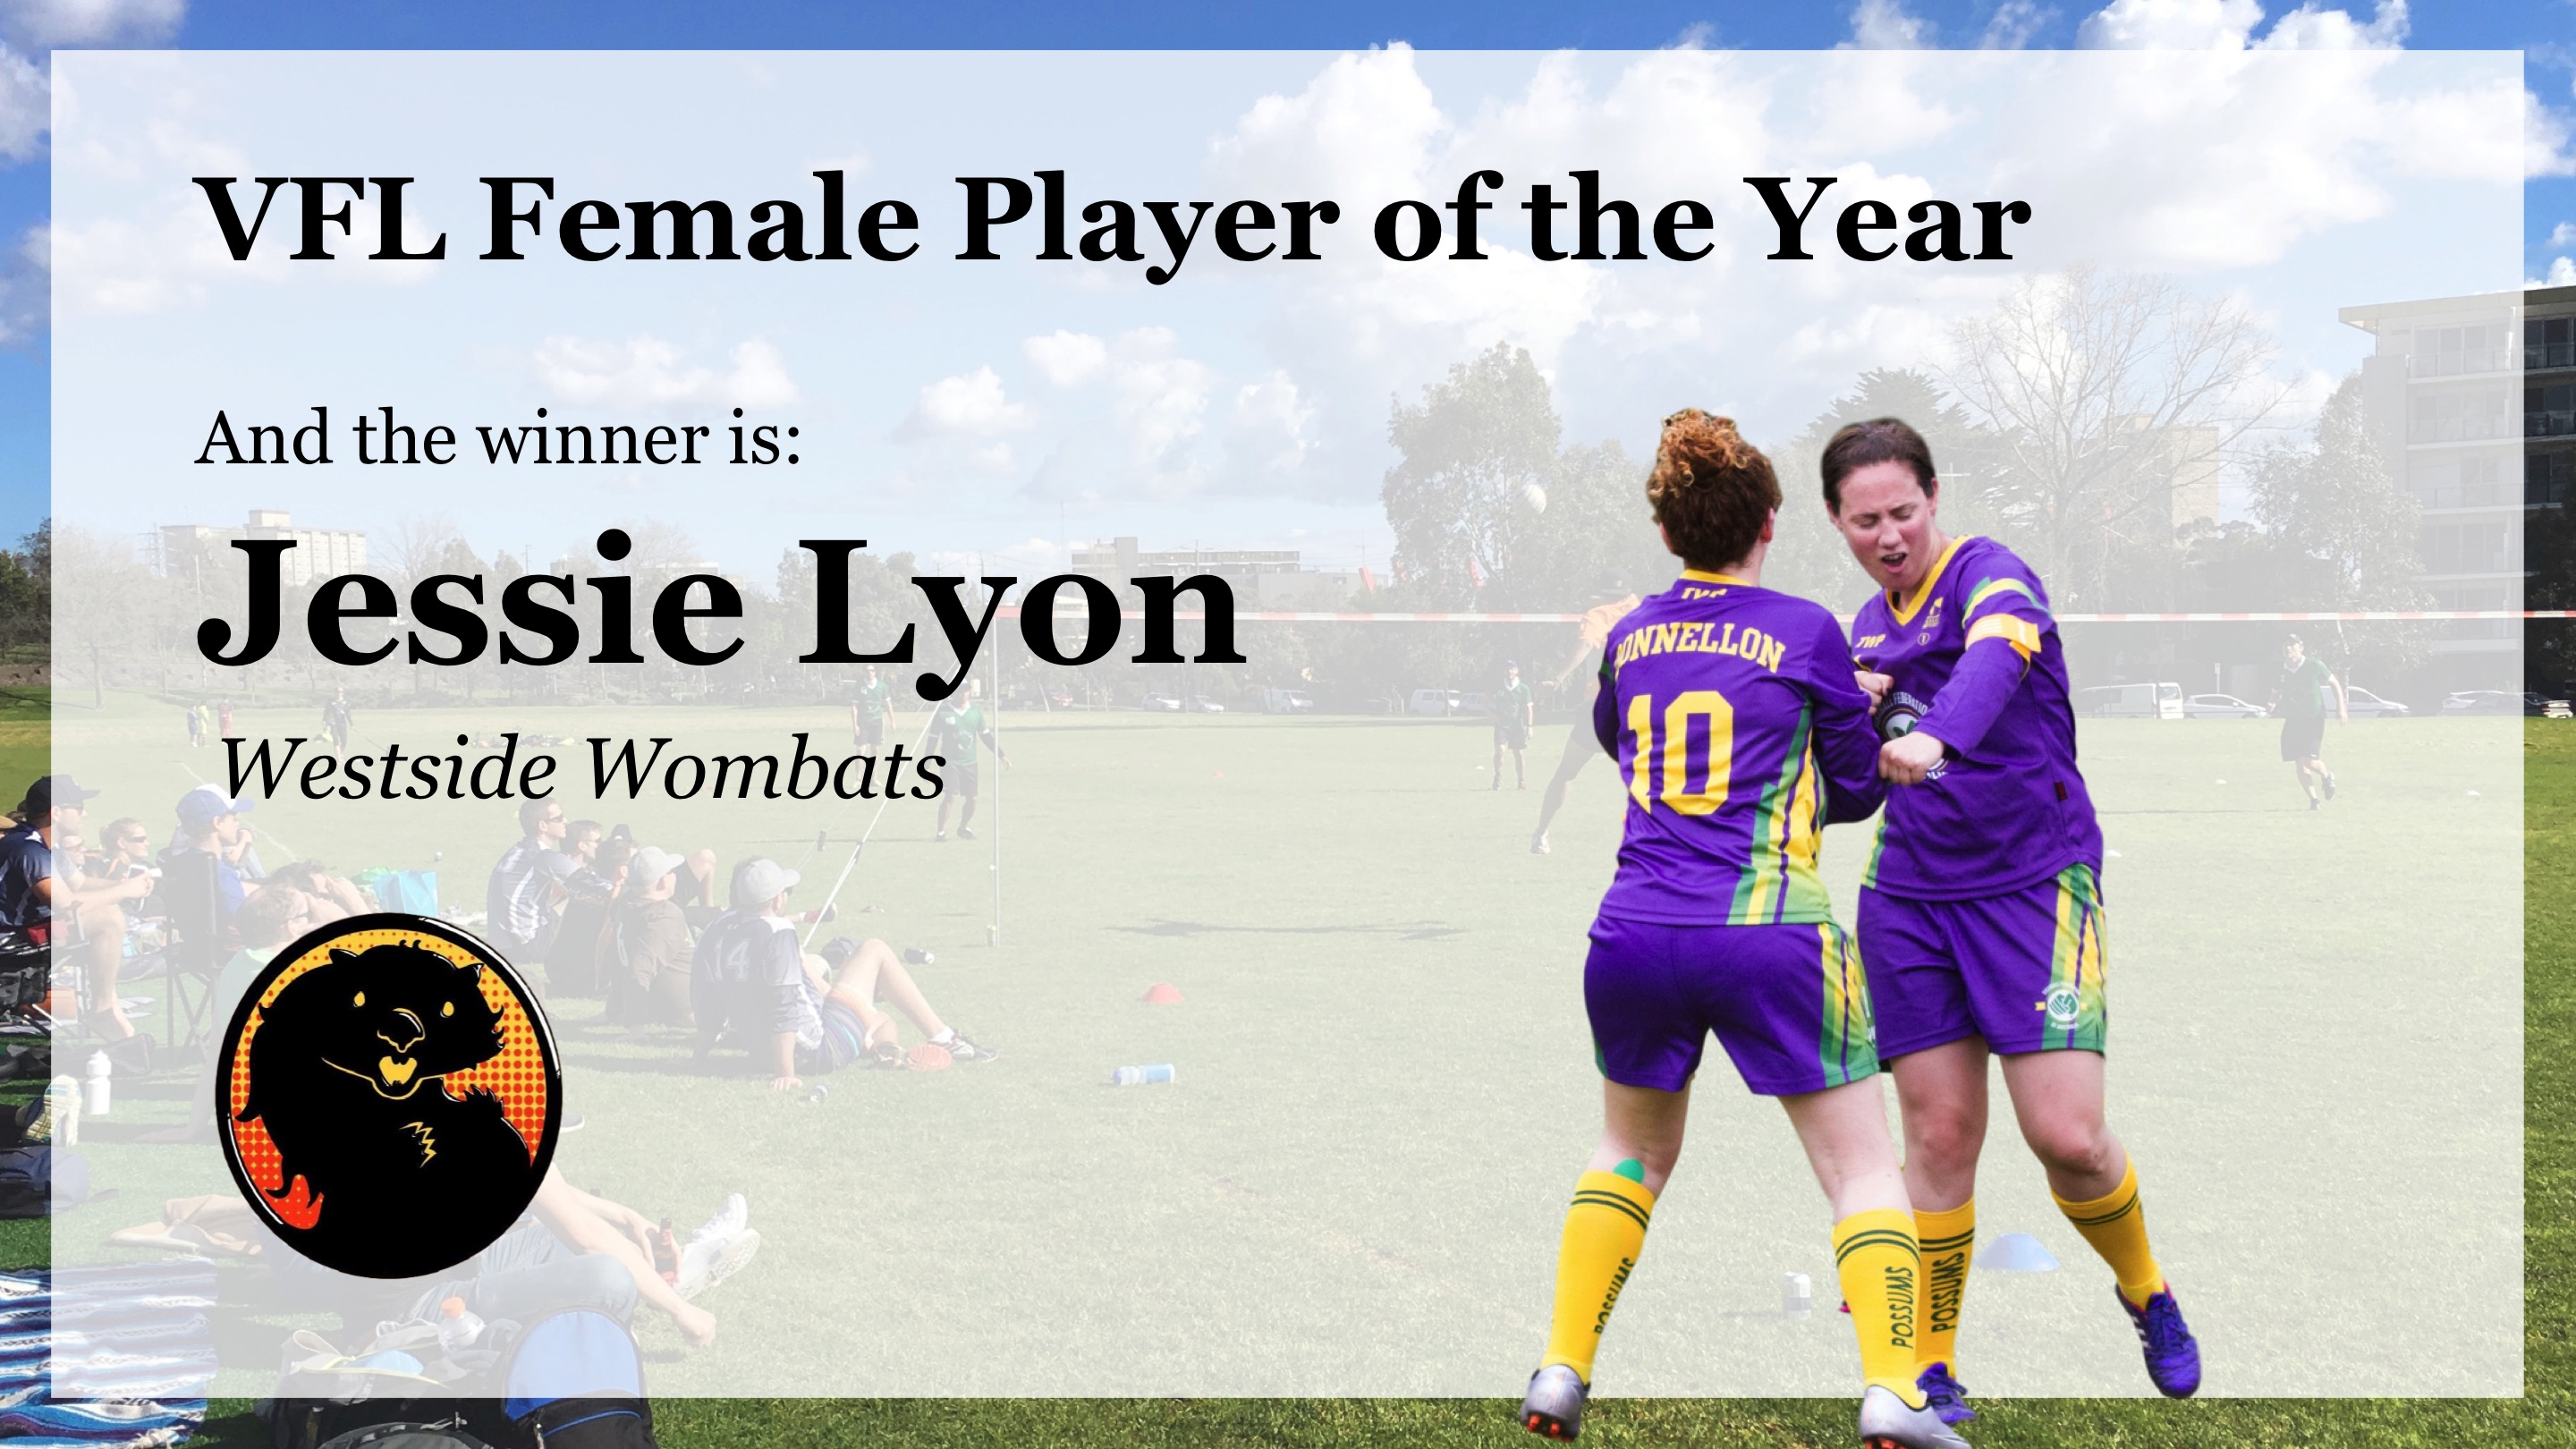 VFL Female Player of the Year